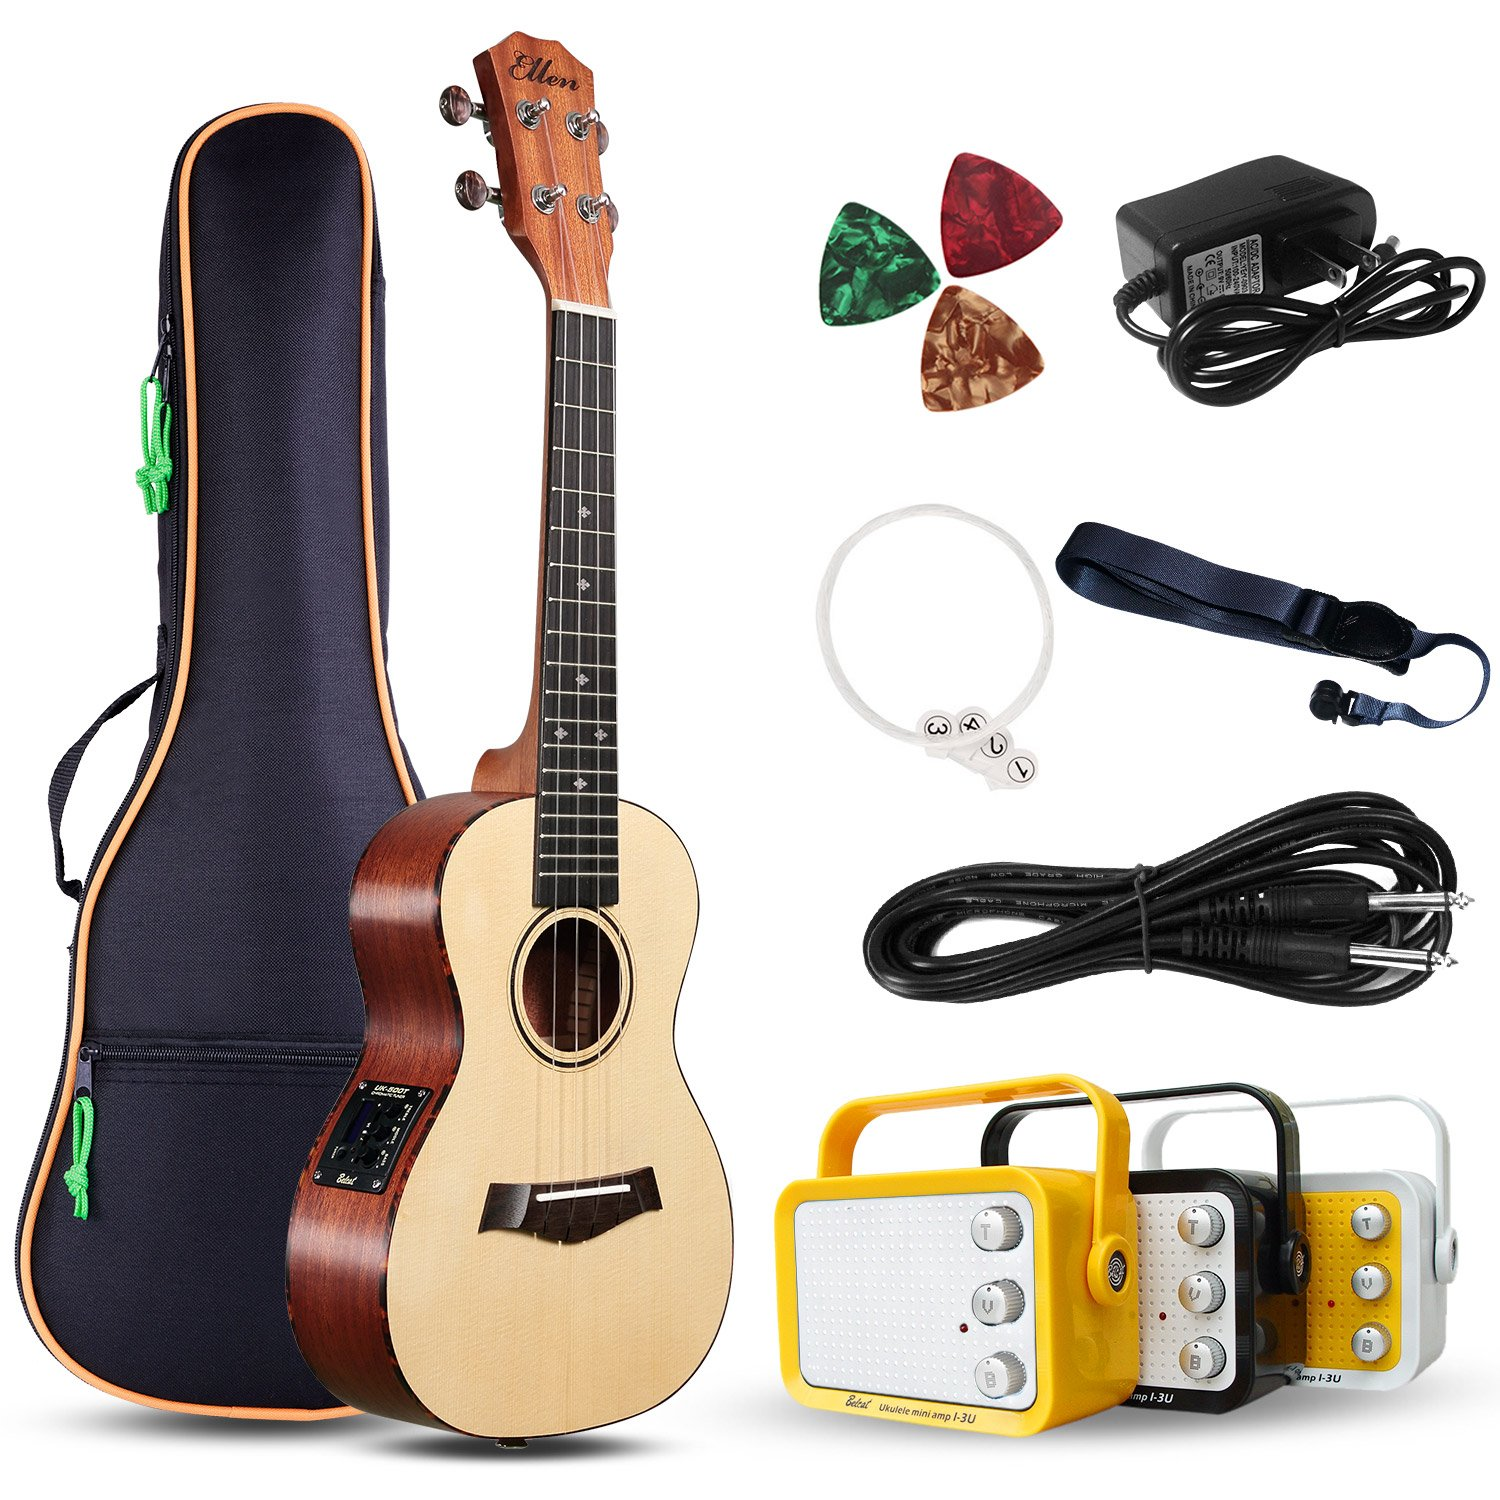 Electric Concert Ukulele With Amp | 23 Acoustic-Electric Ukulele Beginner Kit | This Electric Ukulele Kit Includes Everything Needed For A Beginner Ukulele Learner | Crafted From Spruce Mahogany